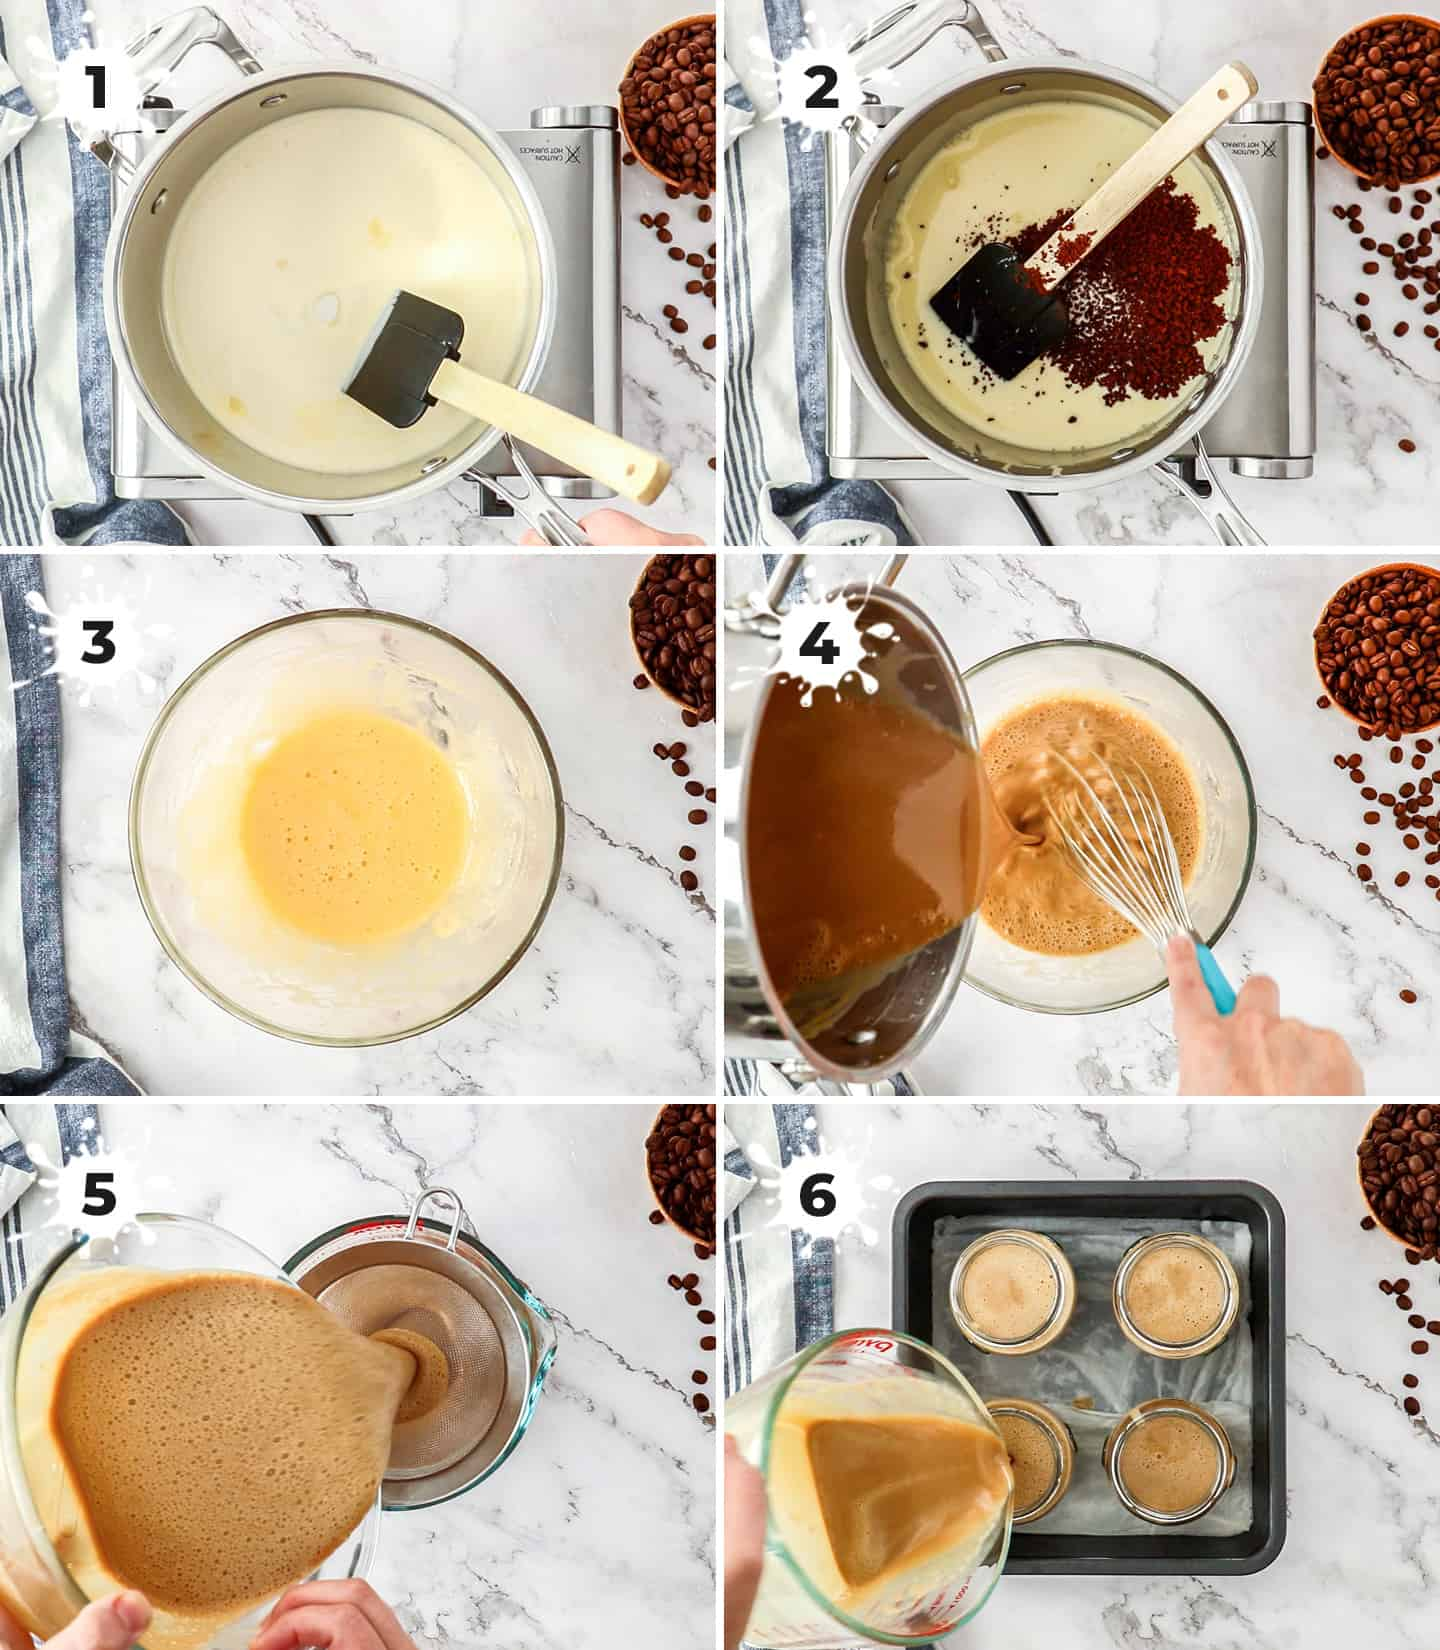 A collage of 6 images showing how to make and assemble coffee creme brulee, ready for baking.